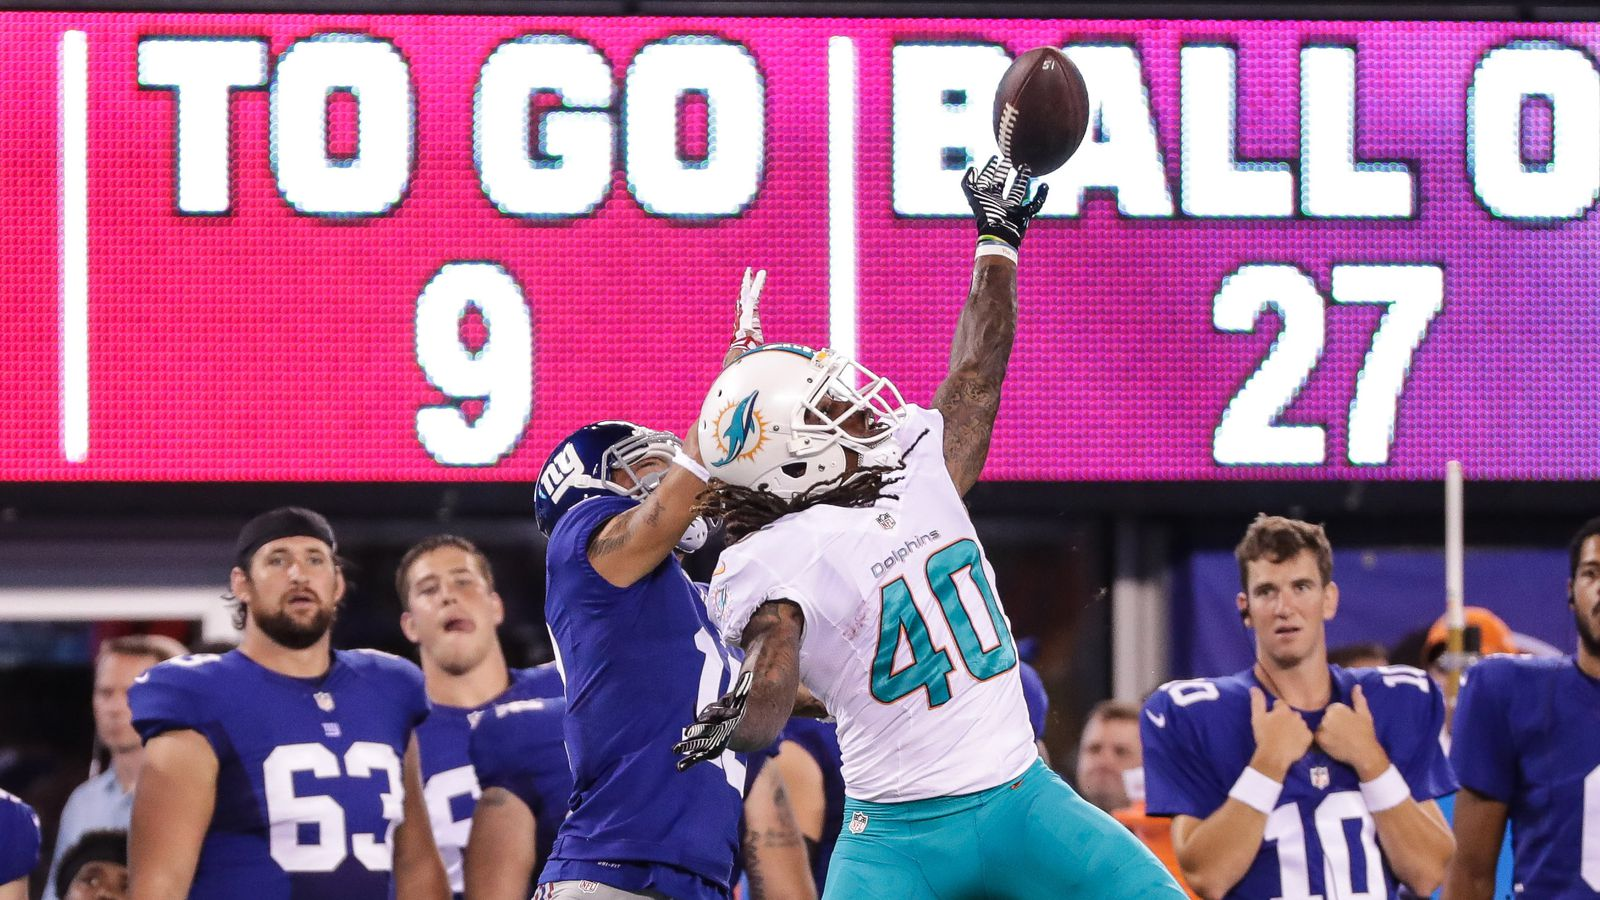 Dolphins roster cuts 2016: Lafayette Pitts out - The Phinsider